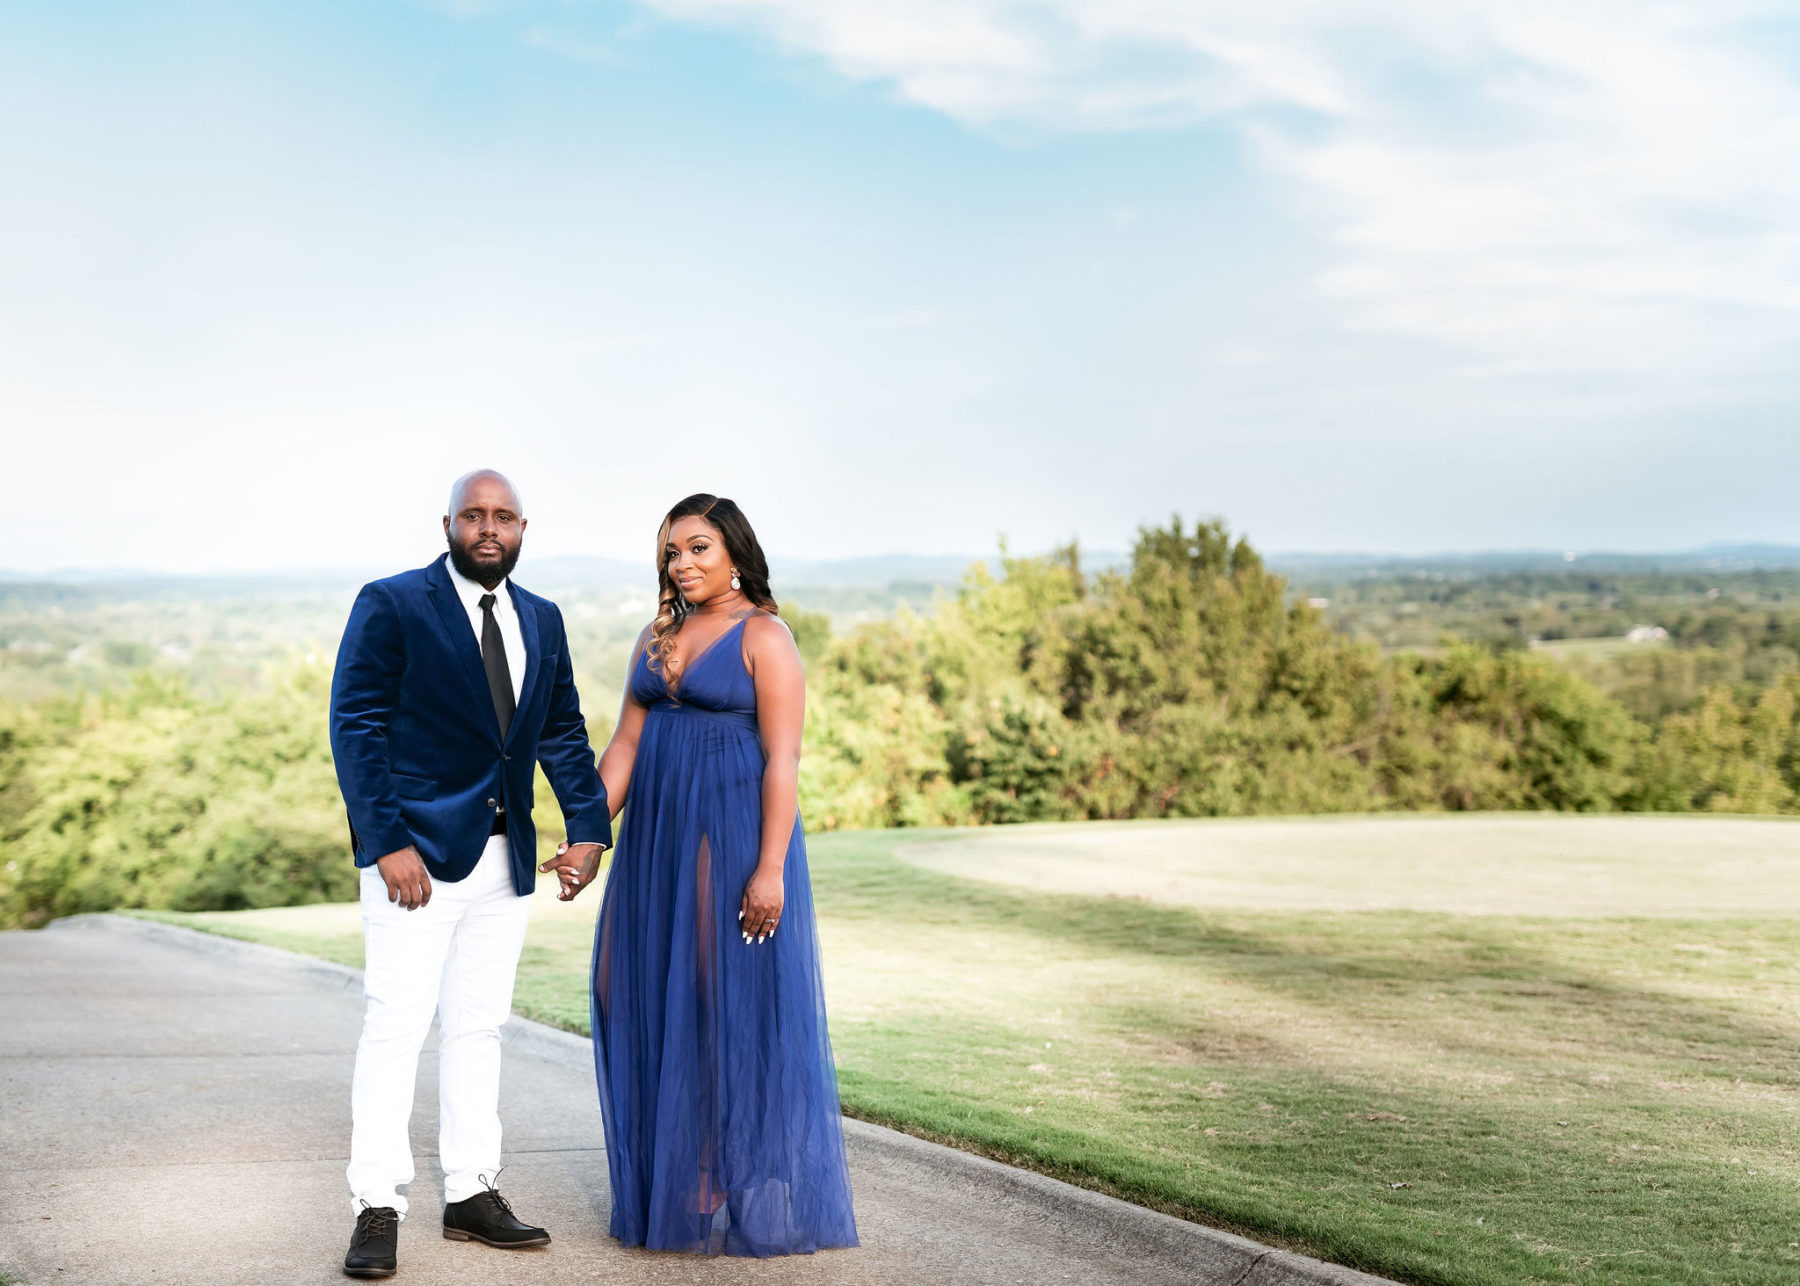 Five Oaks Golf & Country Club engagement session by JAO Photography featured on Nashville Bride Guide!